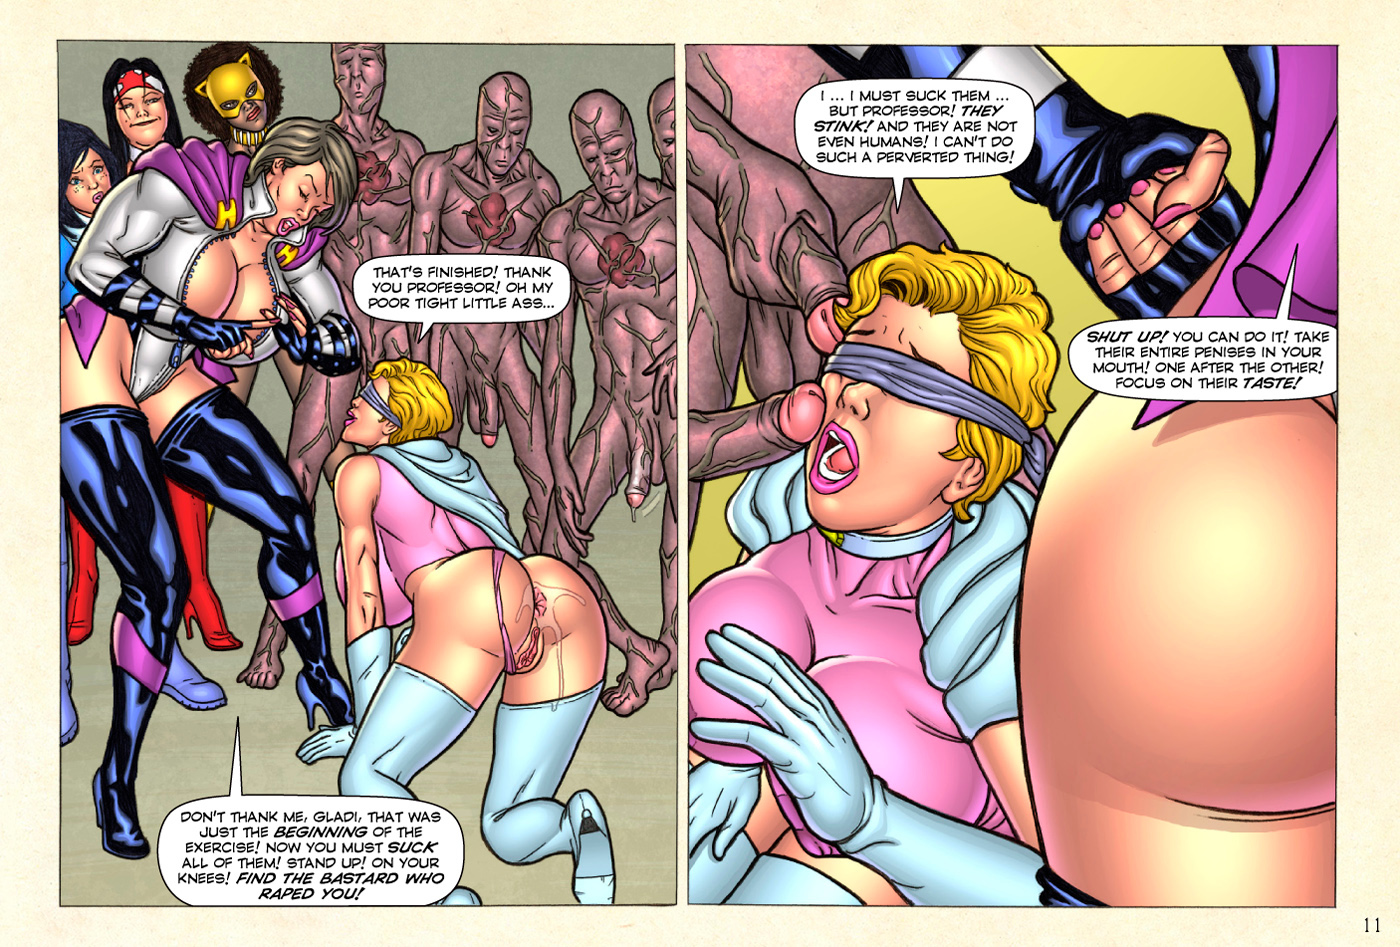 Comics XXX XXX comics free xxx comics xxx comic and